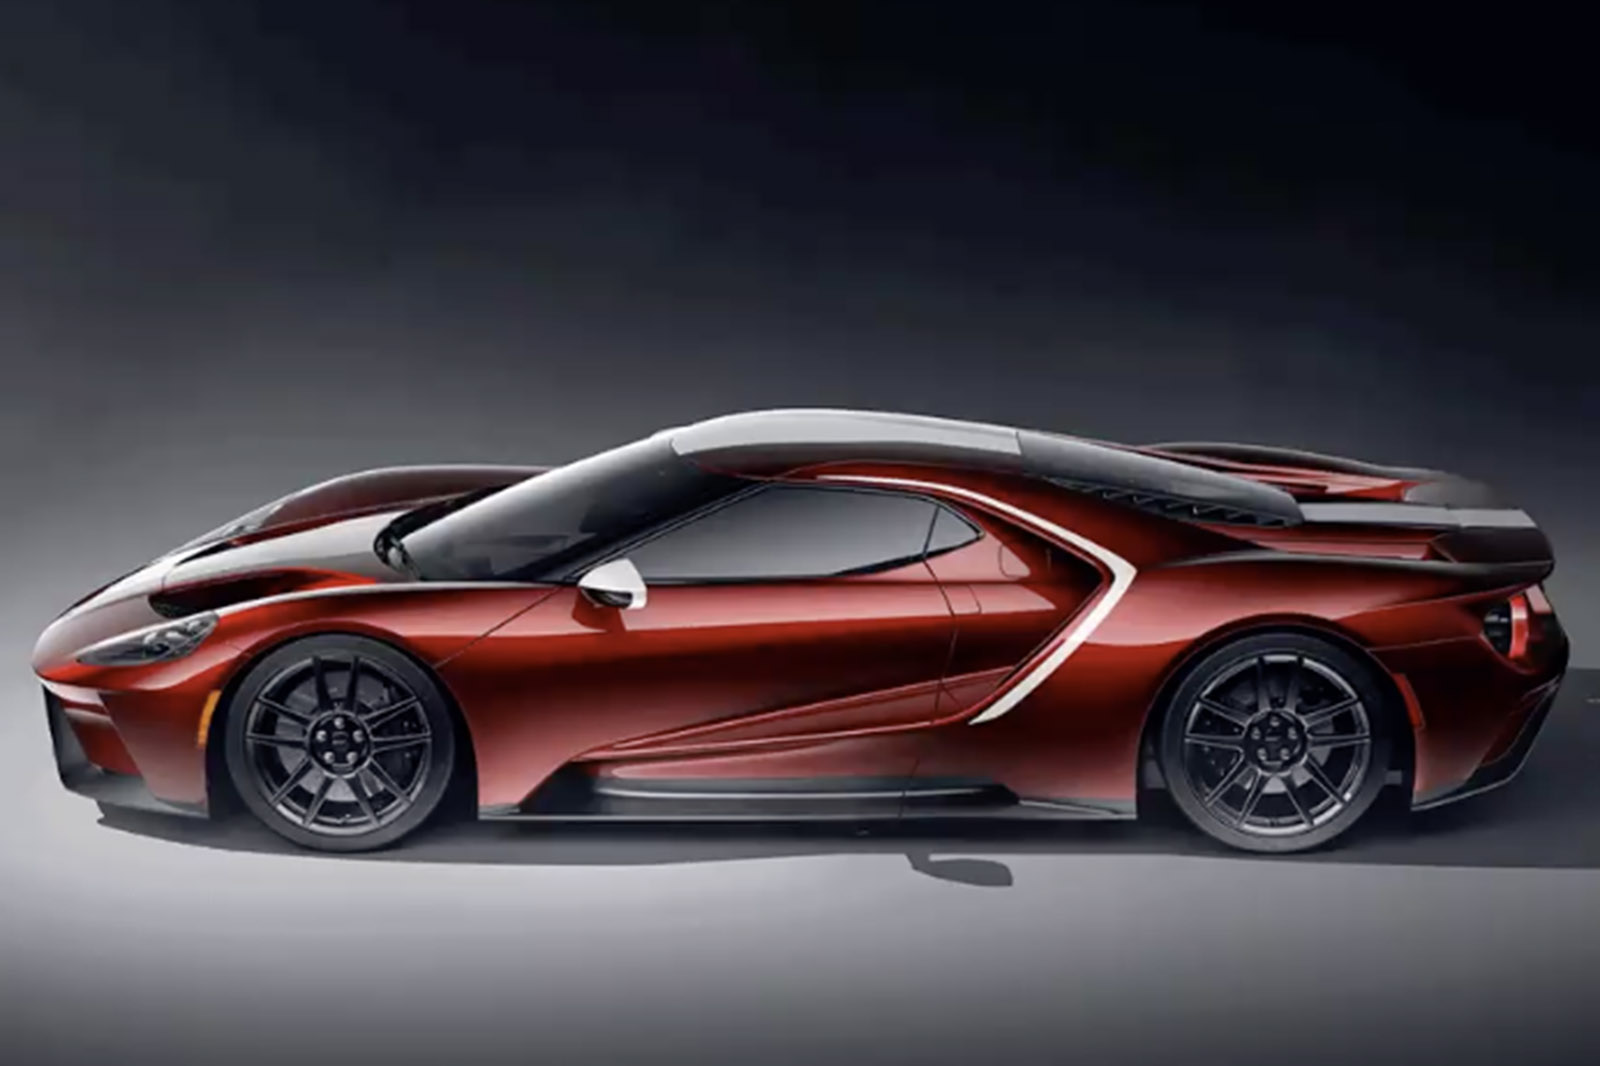 2021 Ford GT to gain new colours and graphics | Autocar